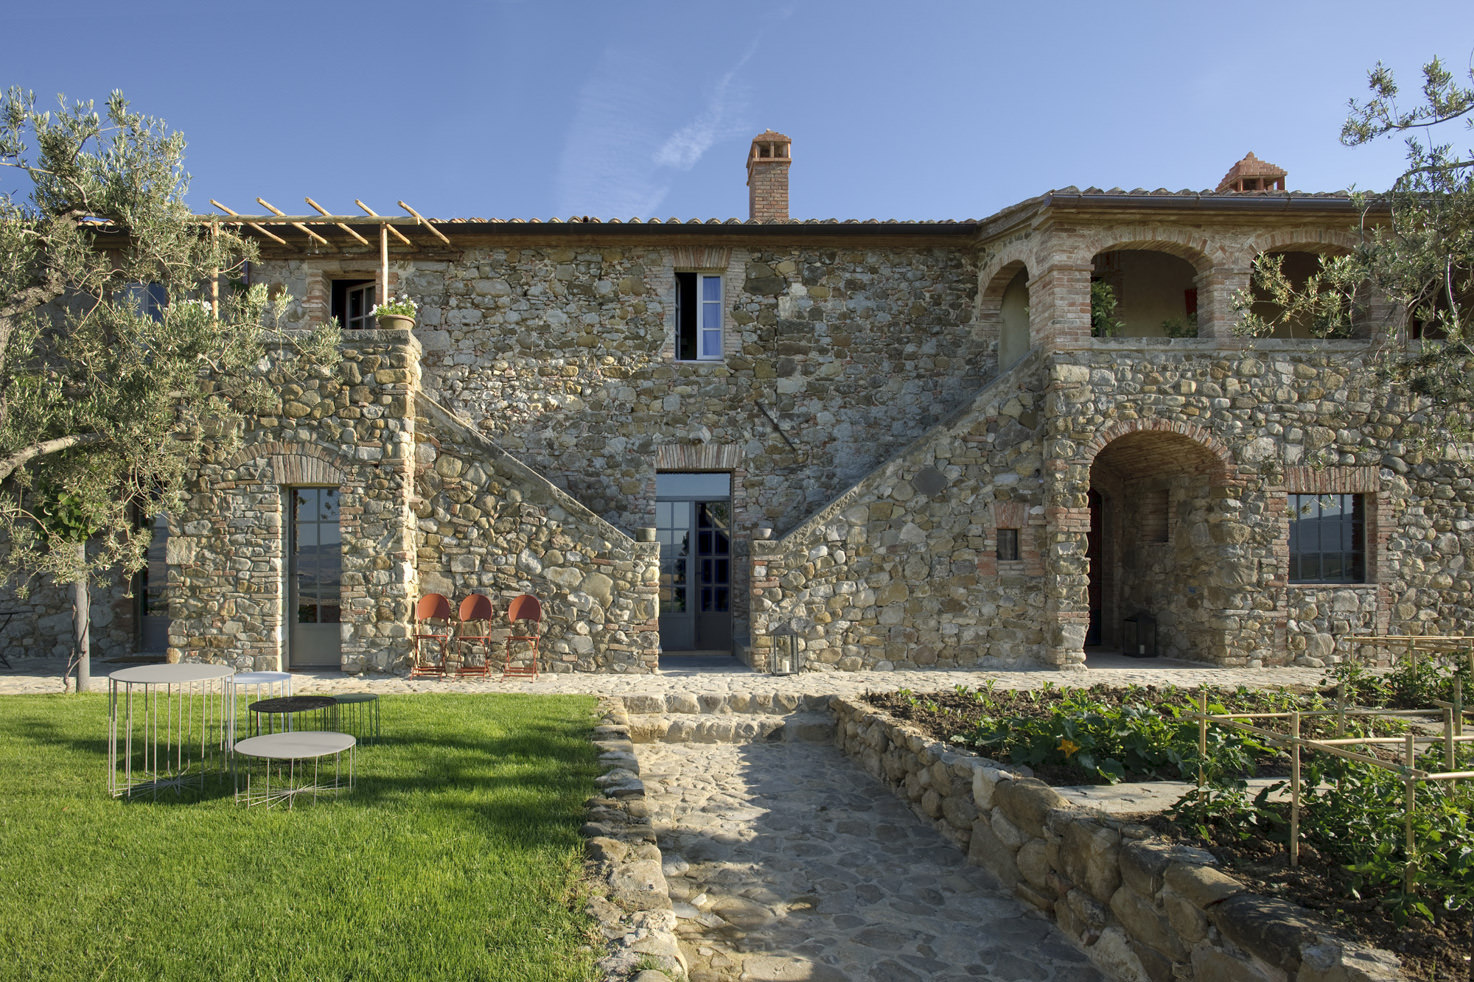 Private villa in the Val D'Orcia region of Tuscany